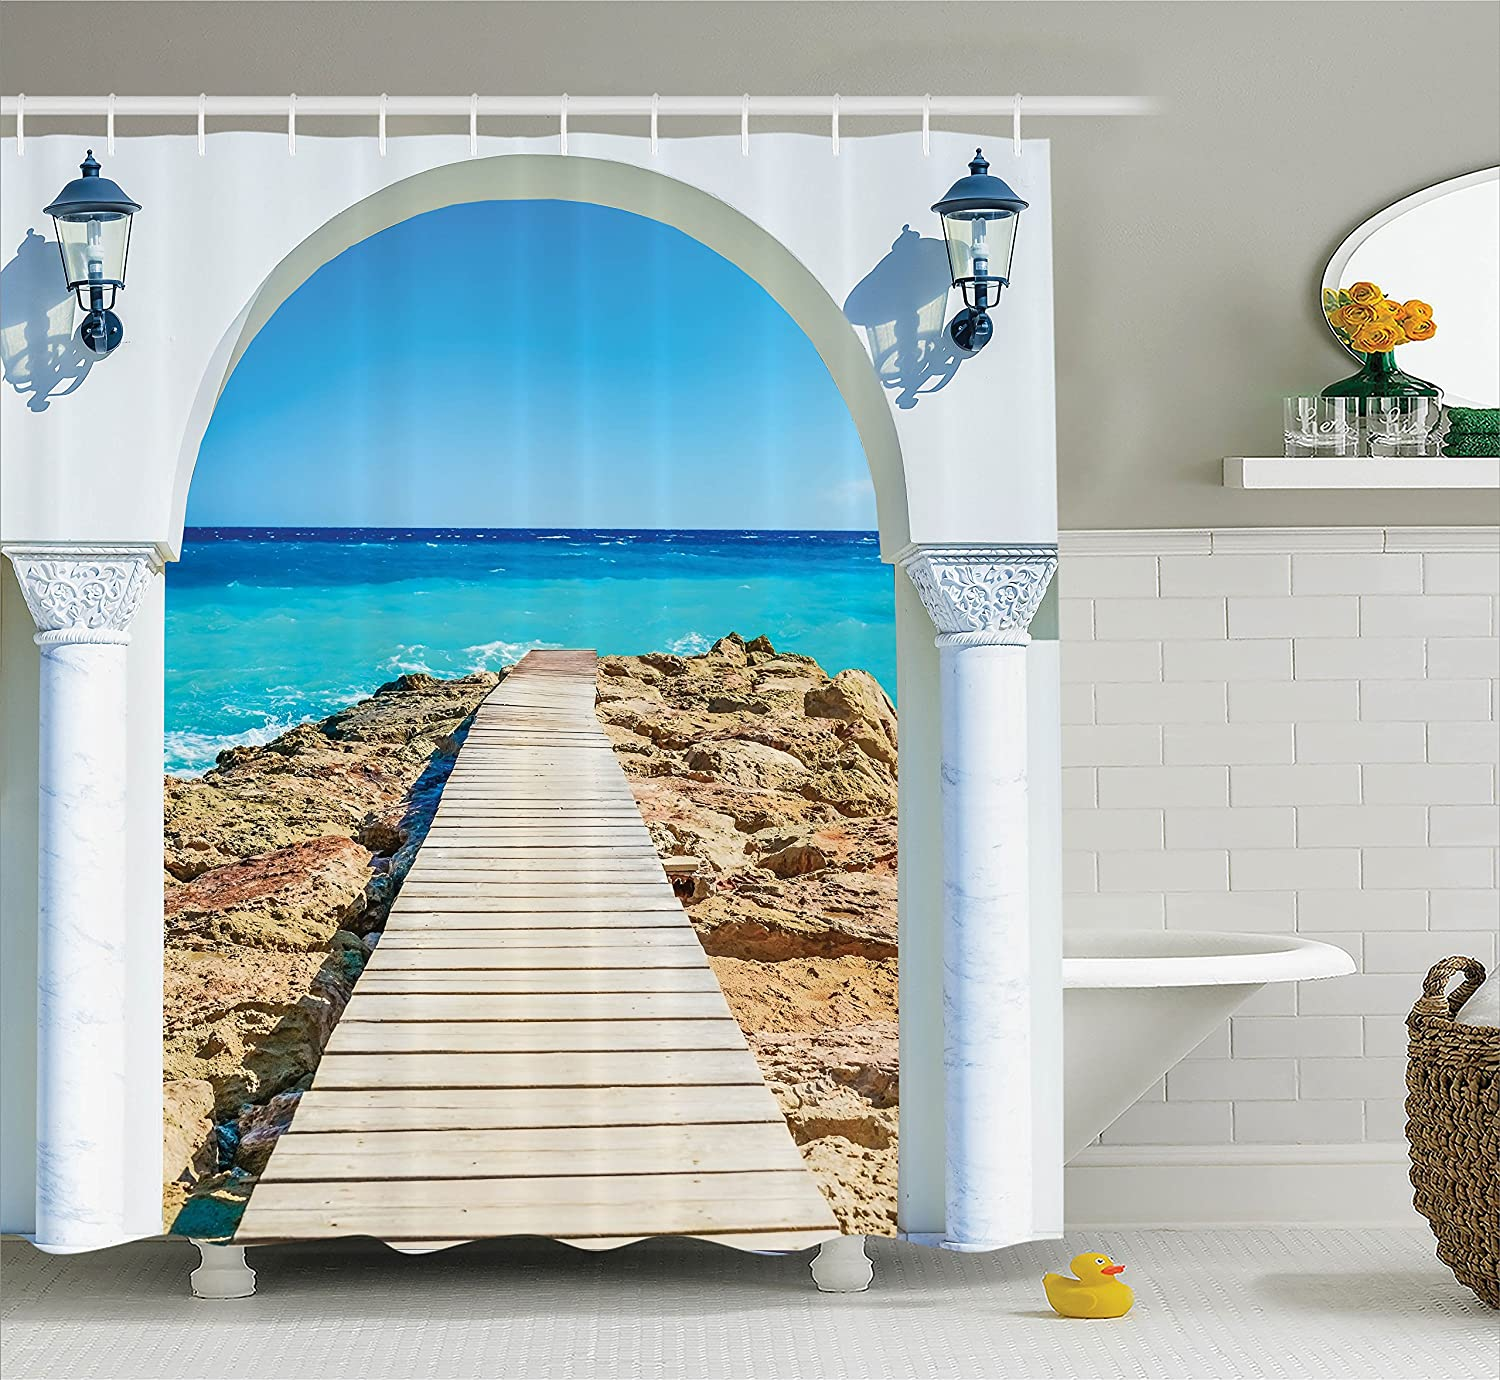 Ambesonne House Decor Shower Curtain Set, View from an Open Window Curve On The Sea with A Quay Wooden Coastline, Bathroom Accessories, 75 Inches Long